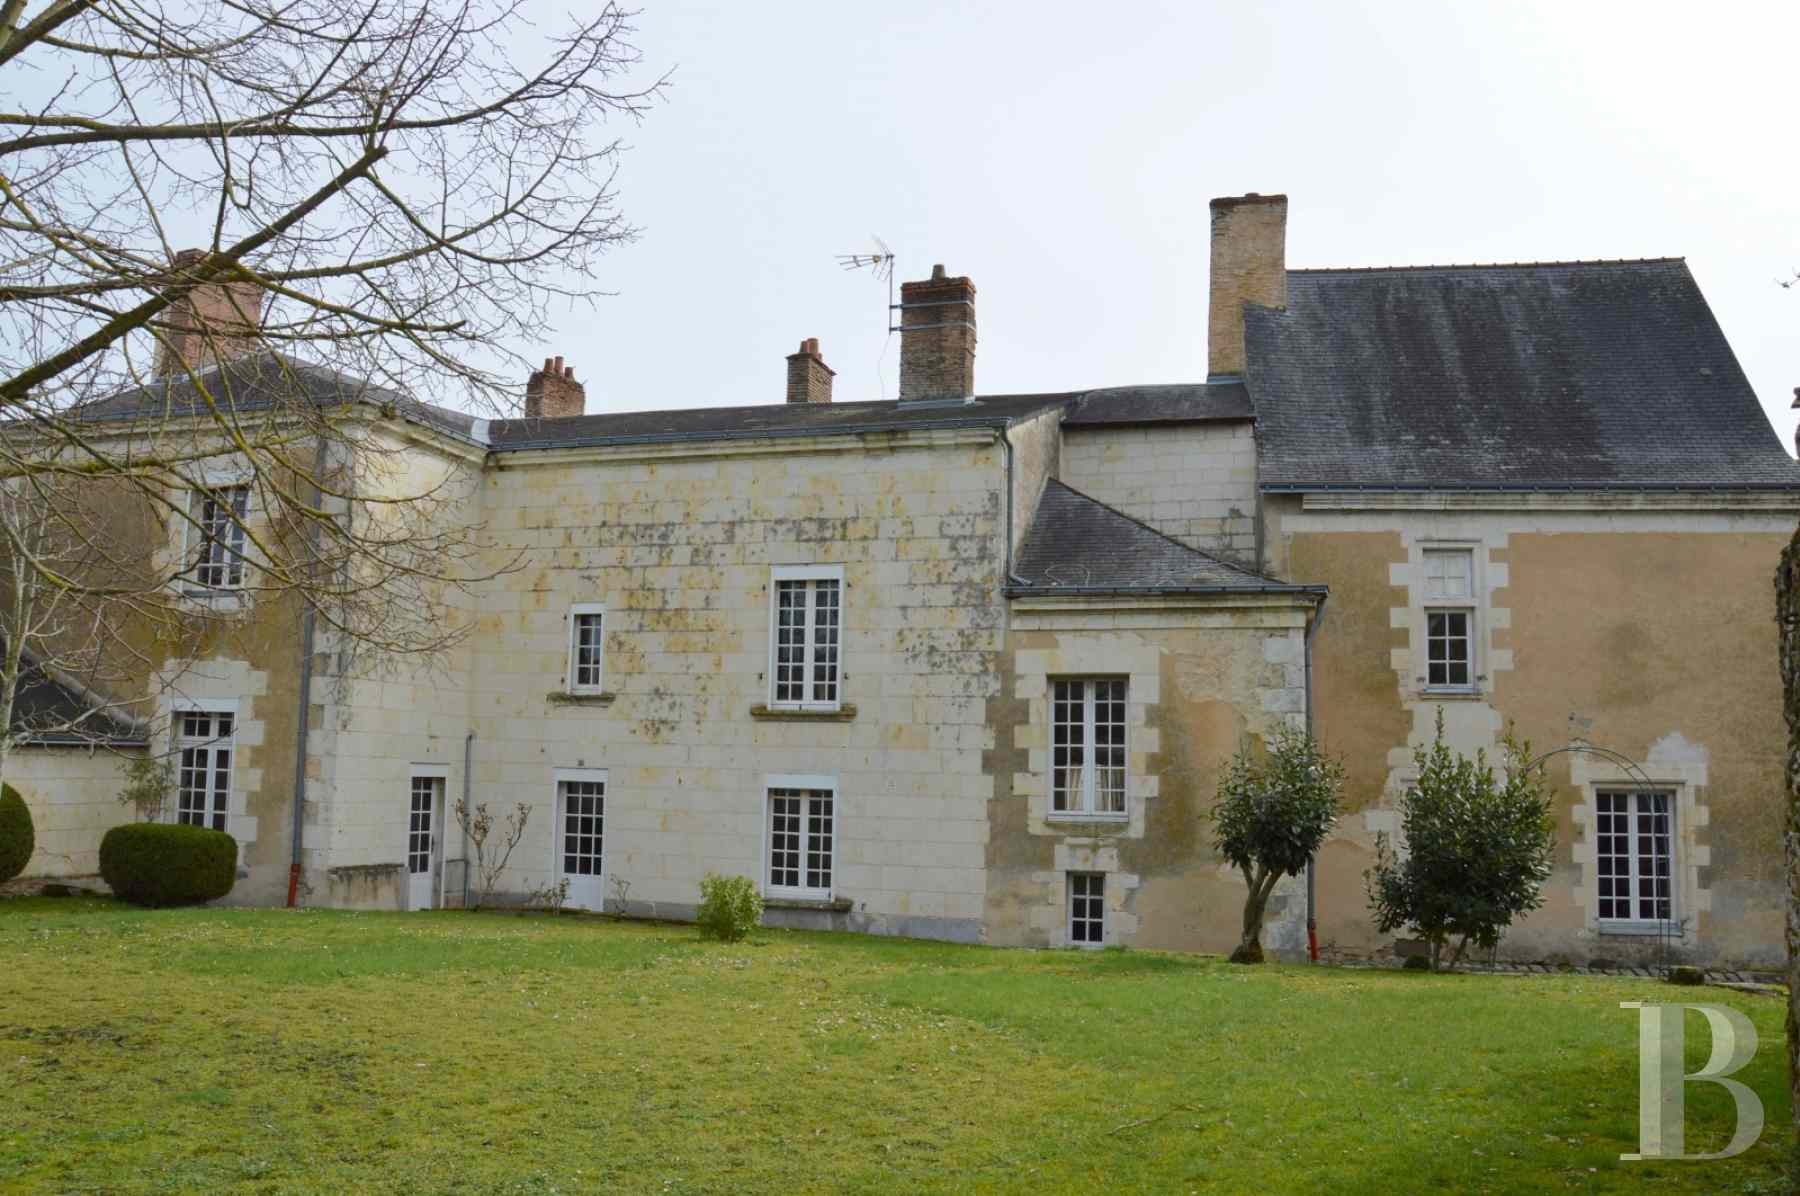 mansion houses for sale France pays de loire 18th century - 1 zoom